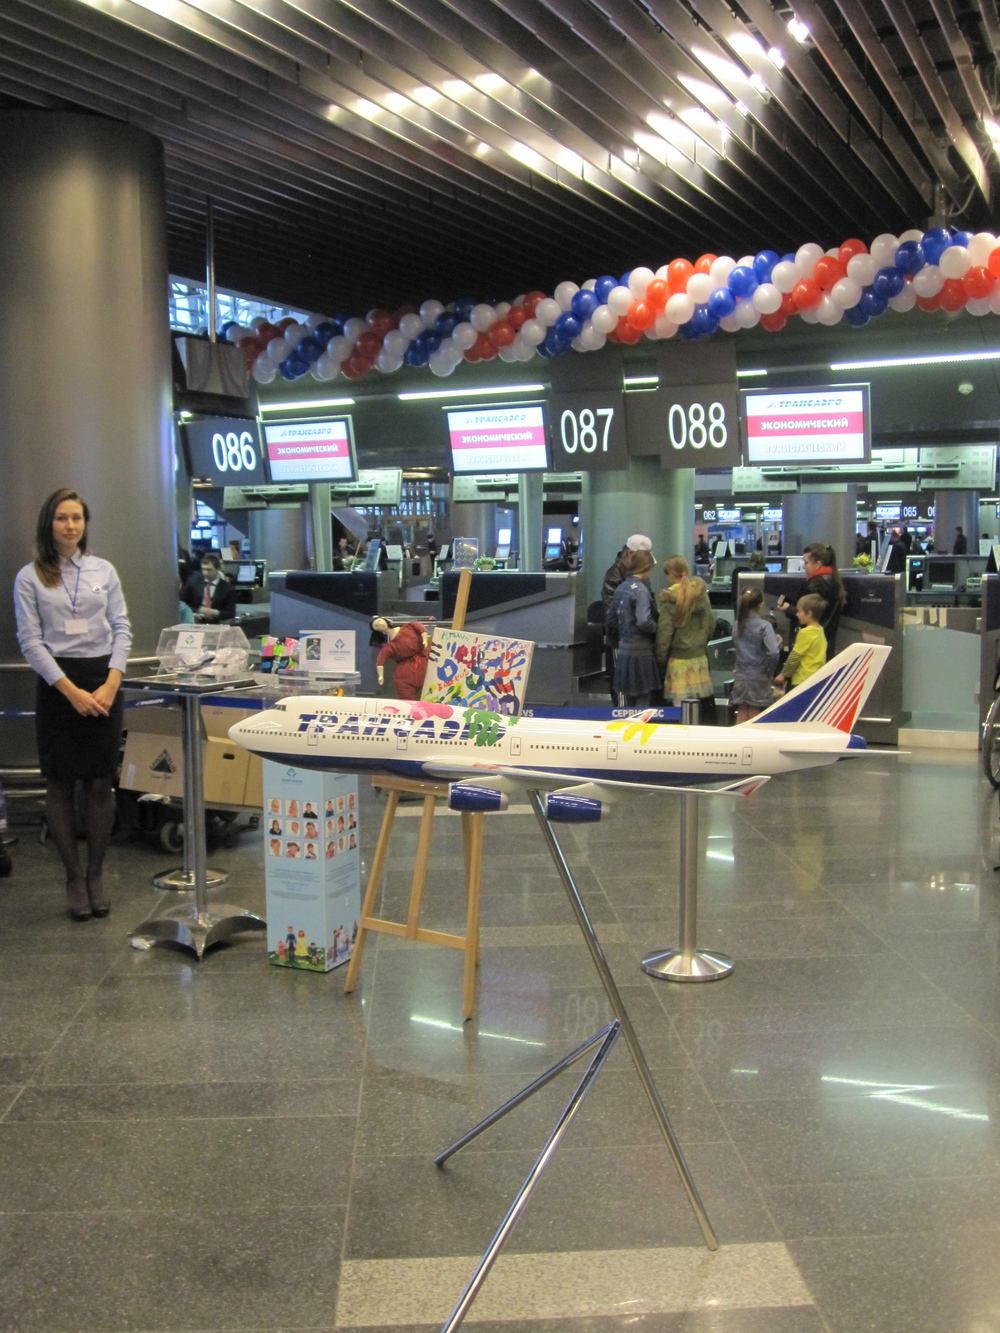 Transaero organized a little event at the check-in area of Vnukovo airport to see off passengers on its first Flight of Hope